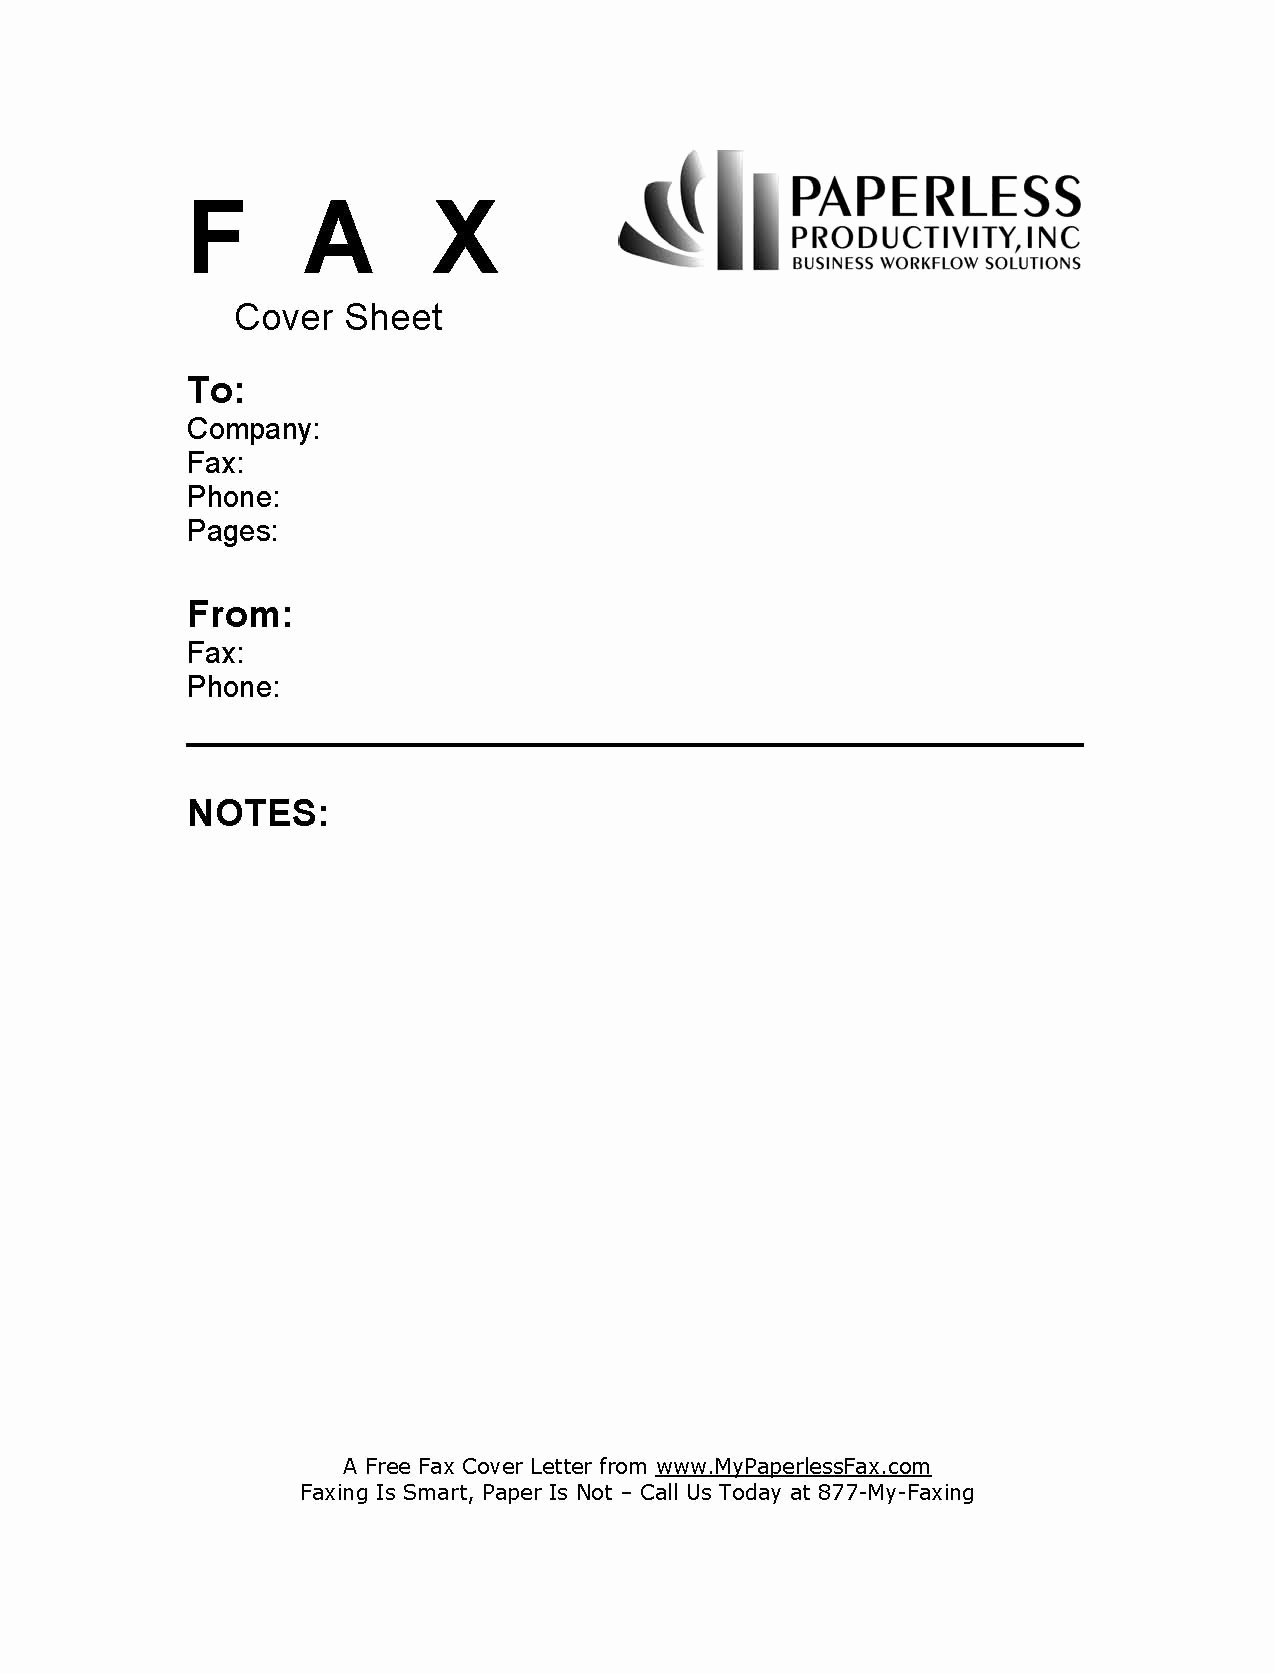 Samples Of Fax Cover Sheet Elegant Sample Fax Cover Page